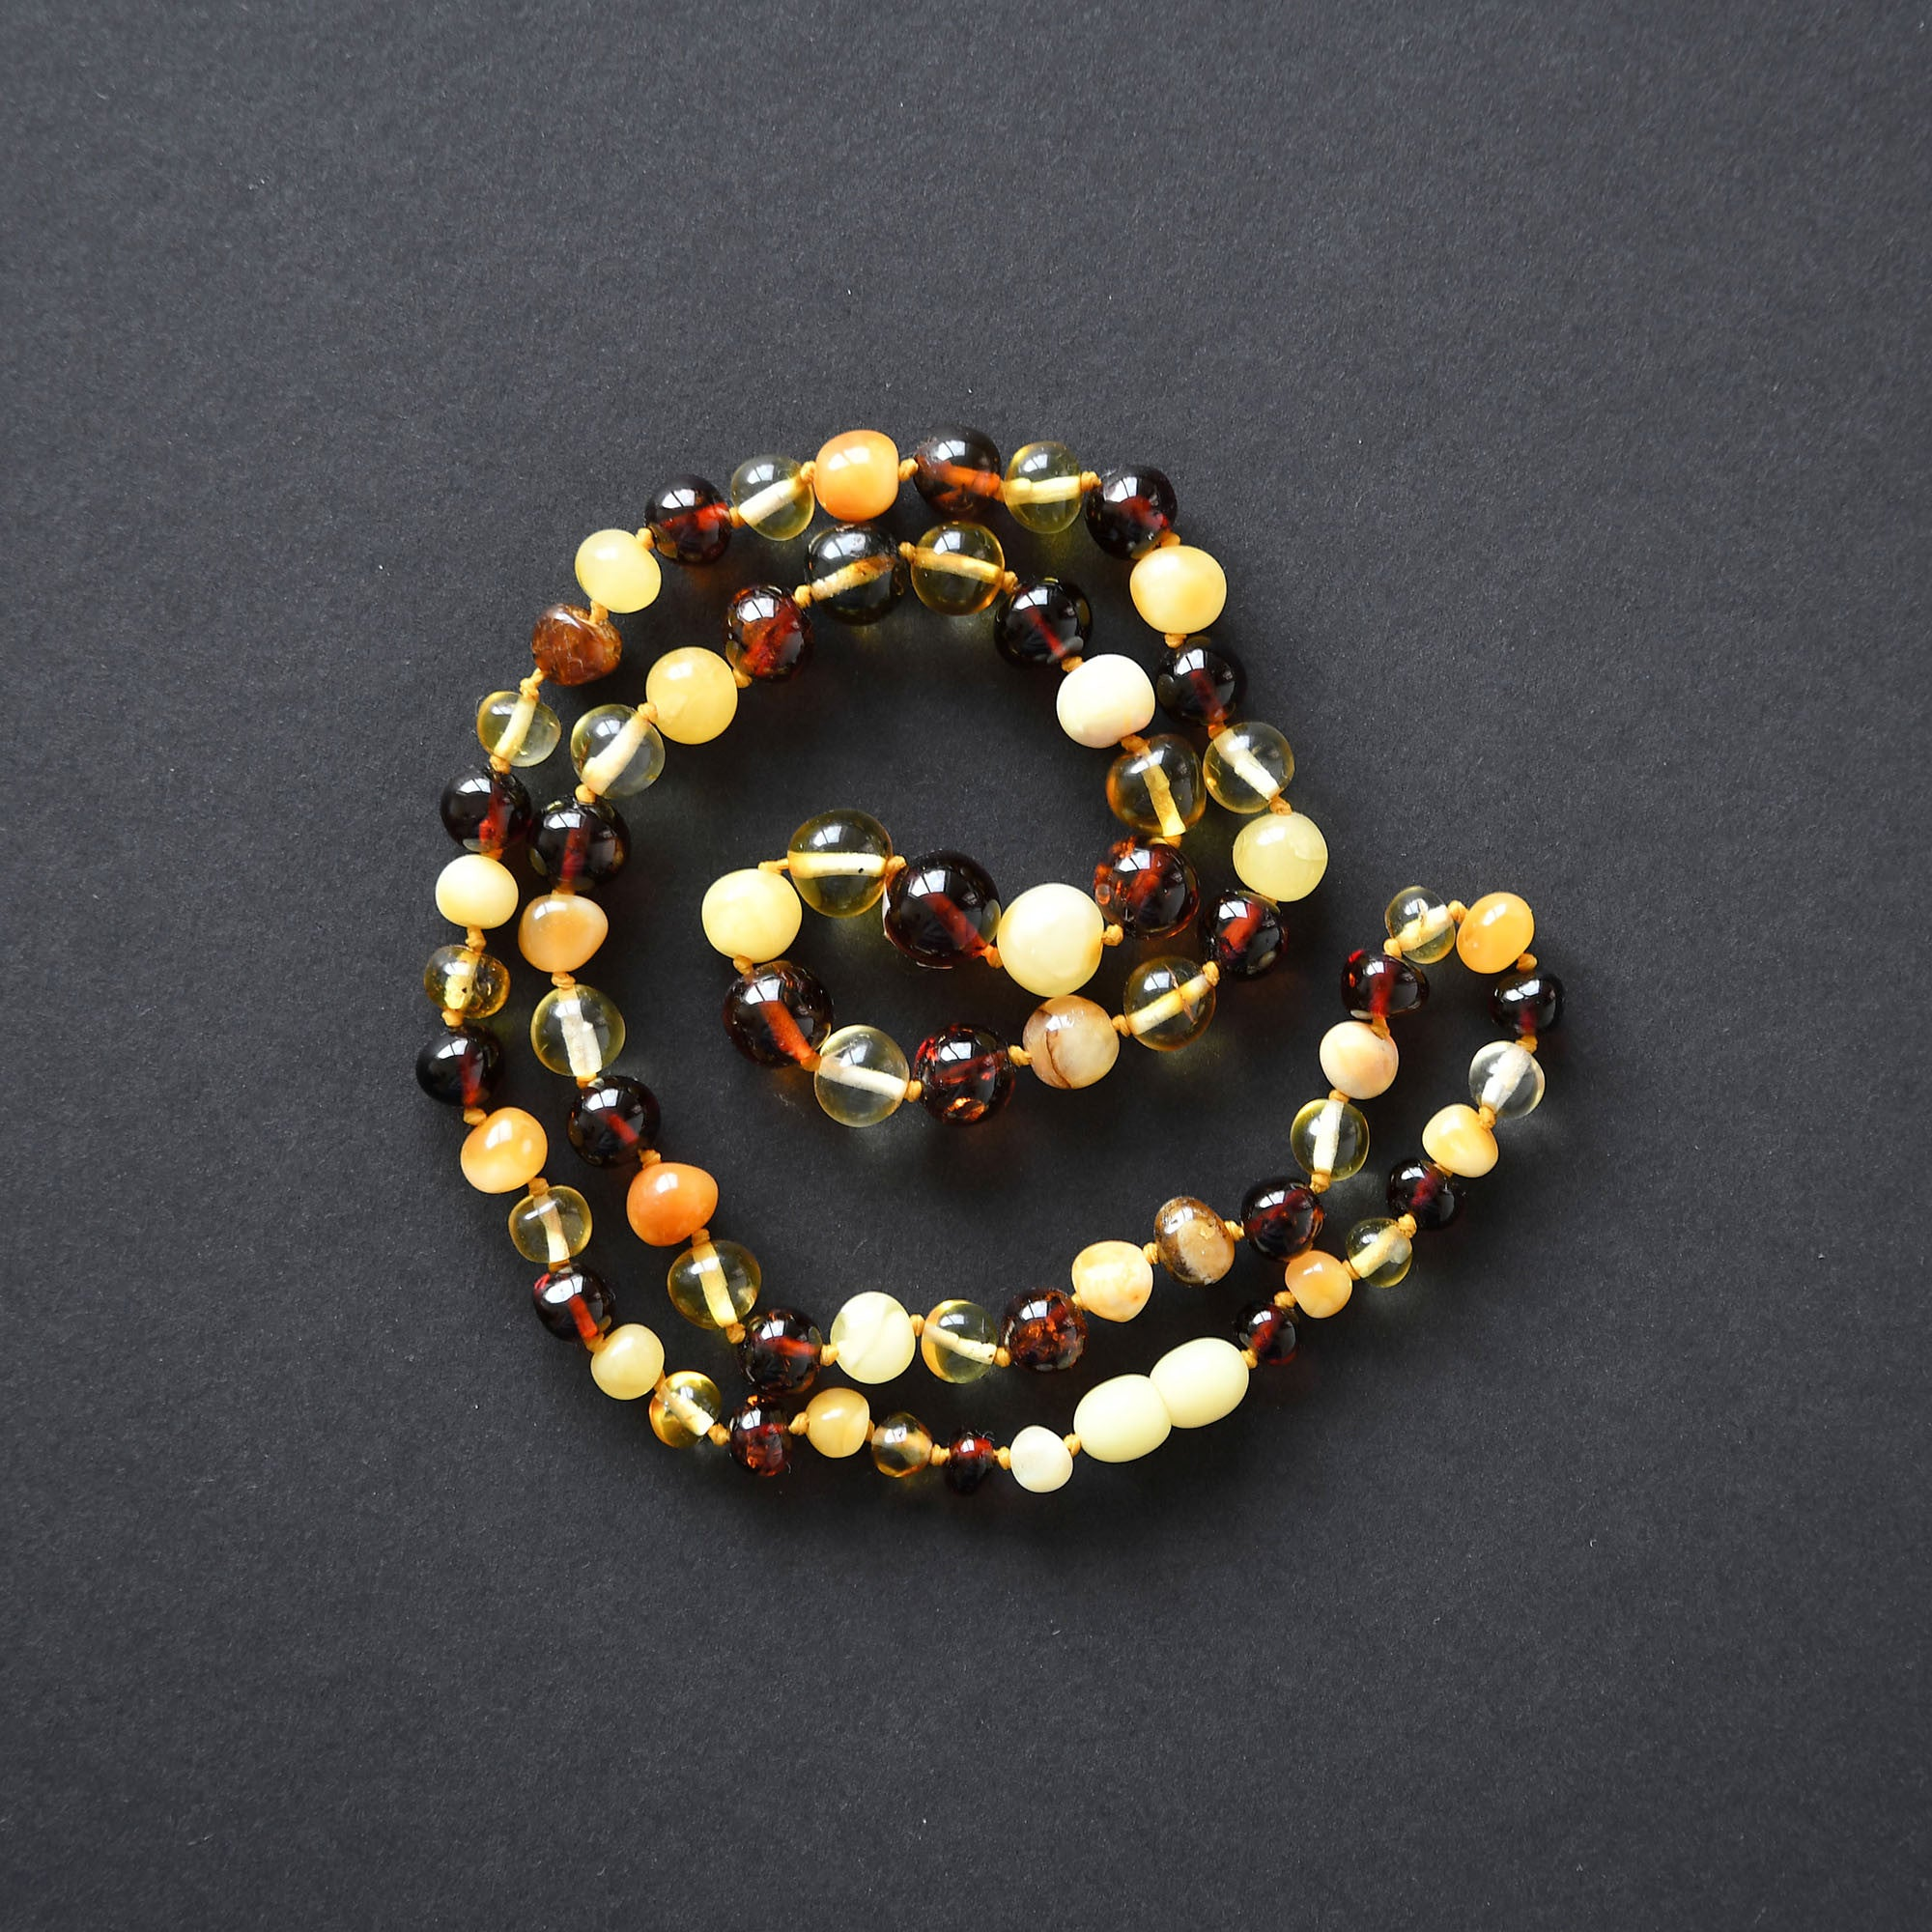 Multicolored necklace of irregular round form